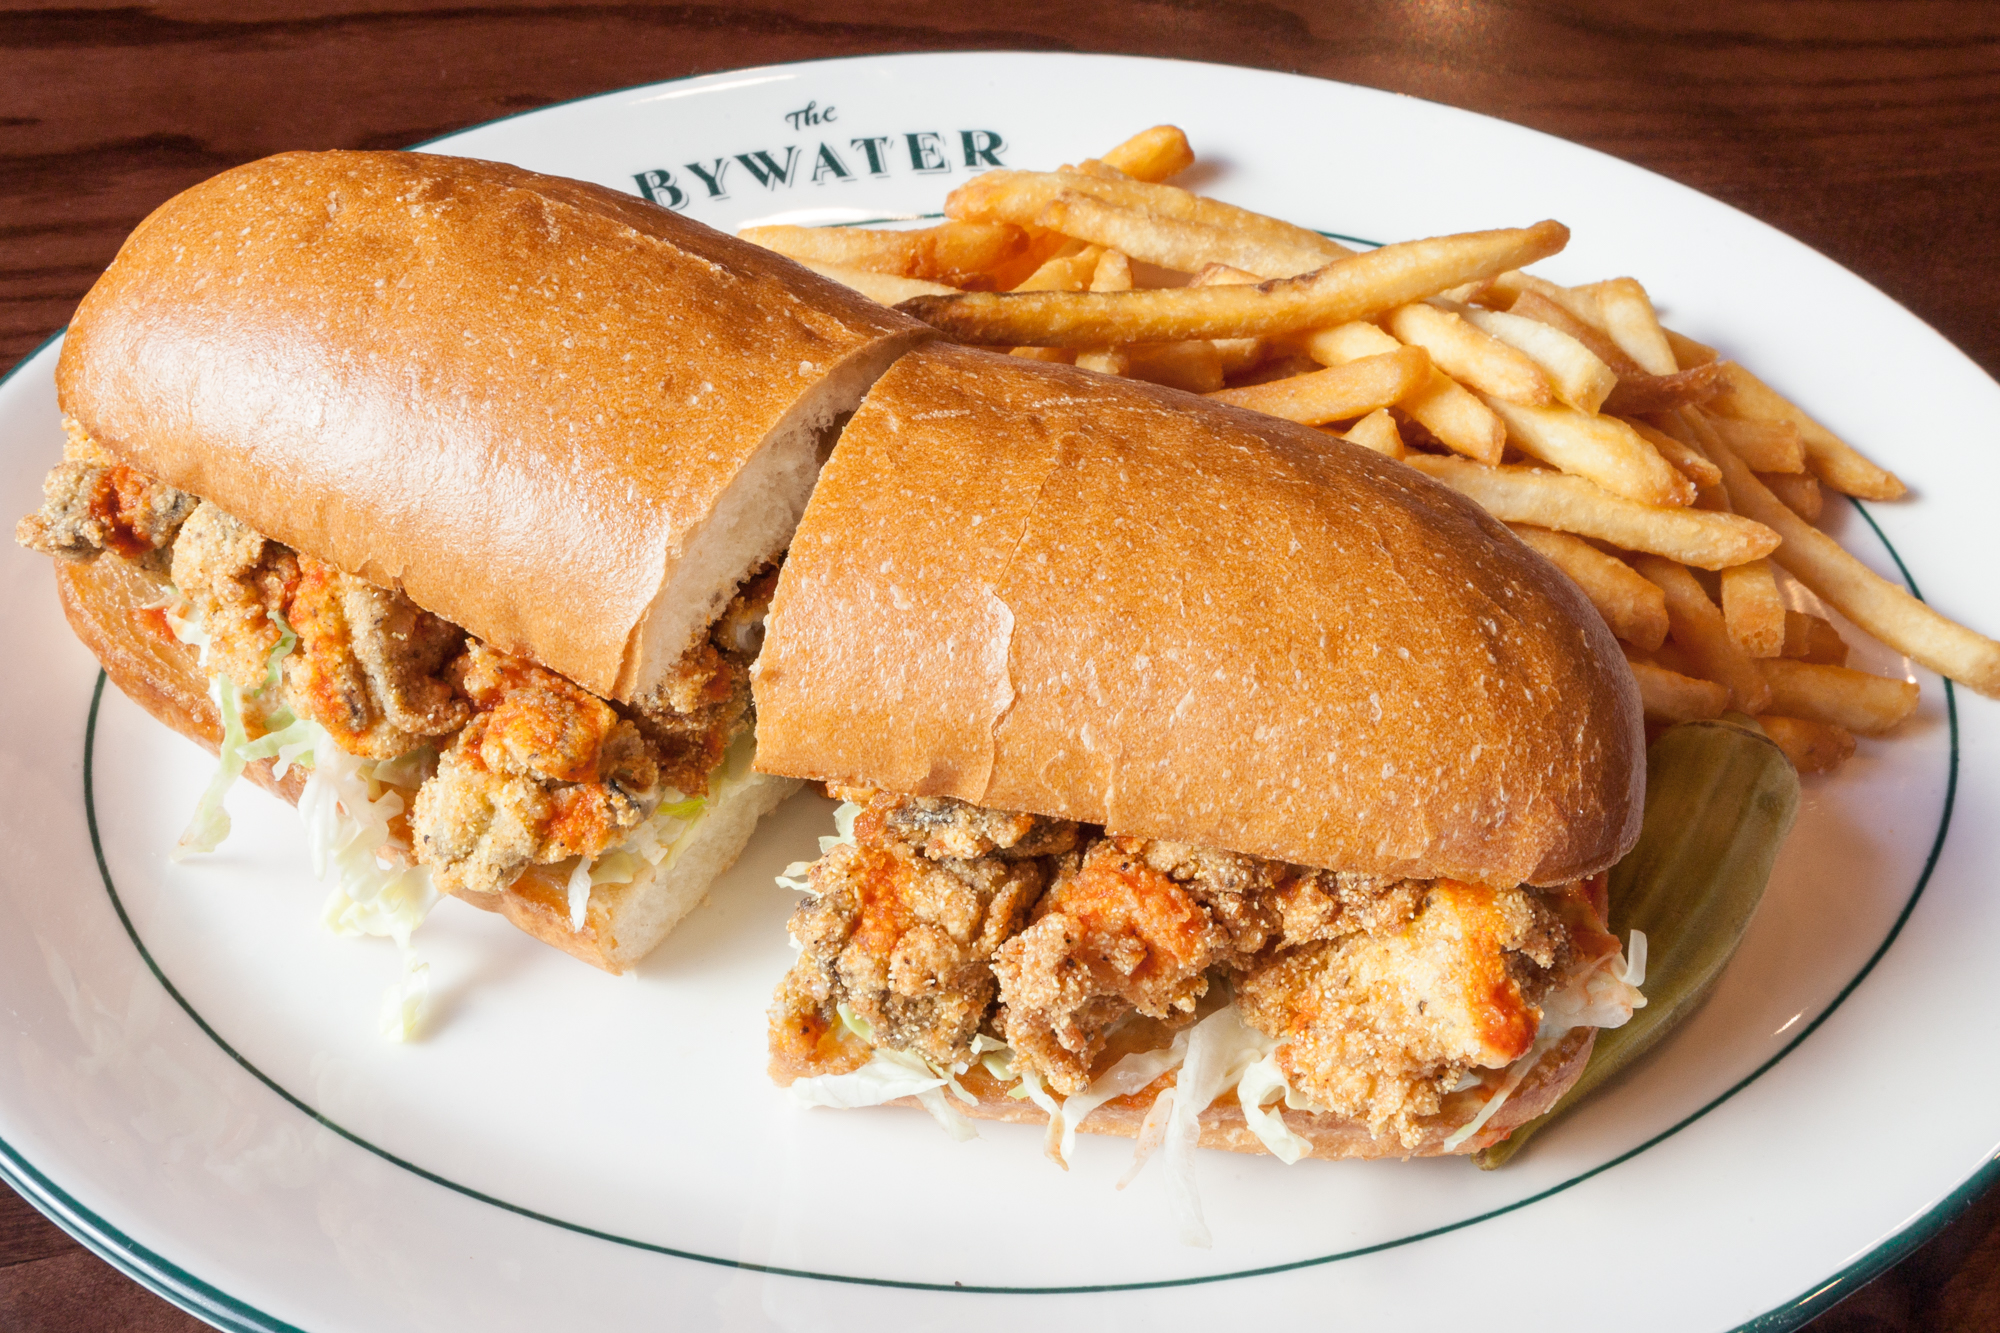 The oyster po'boy.